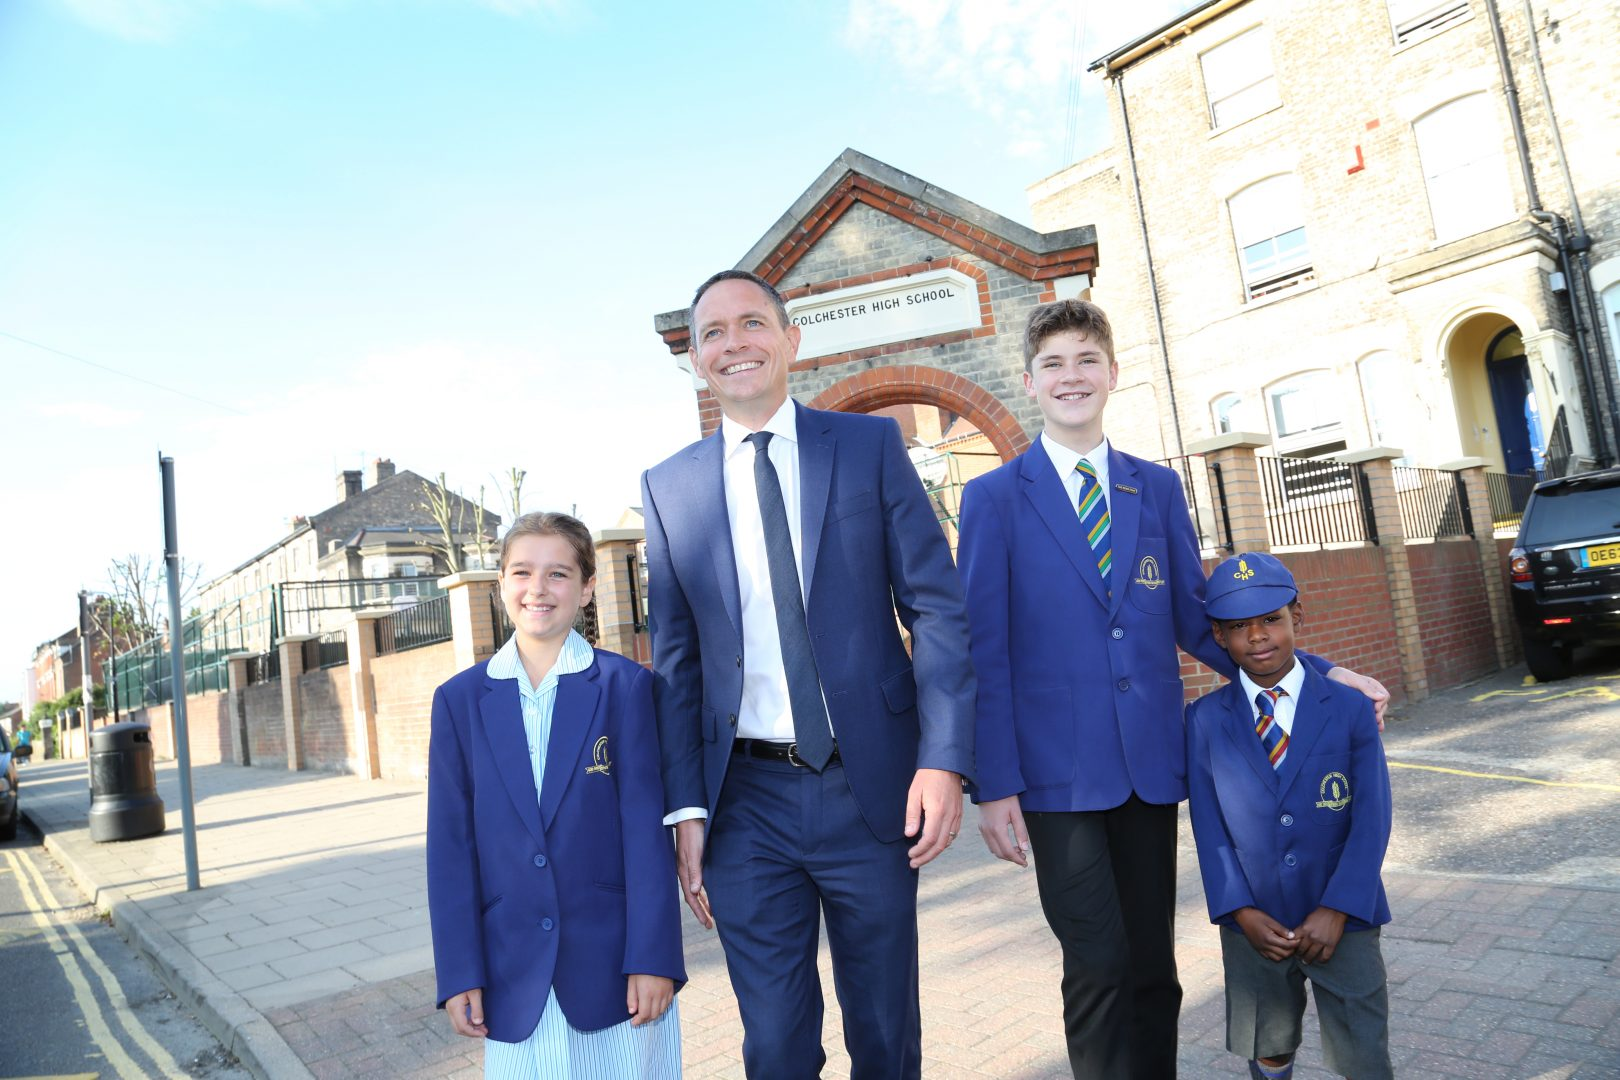 Headmaster walks with pupils across the school courtyard